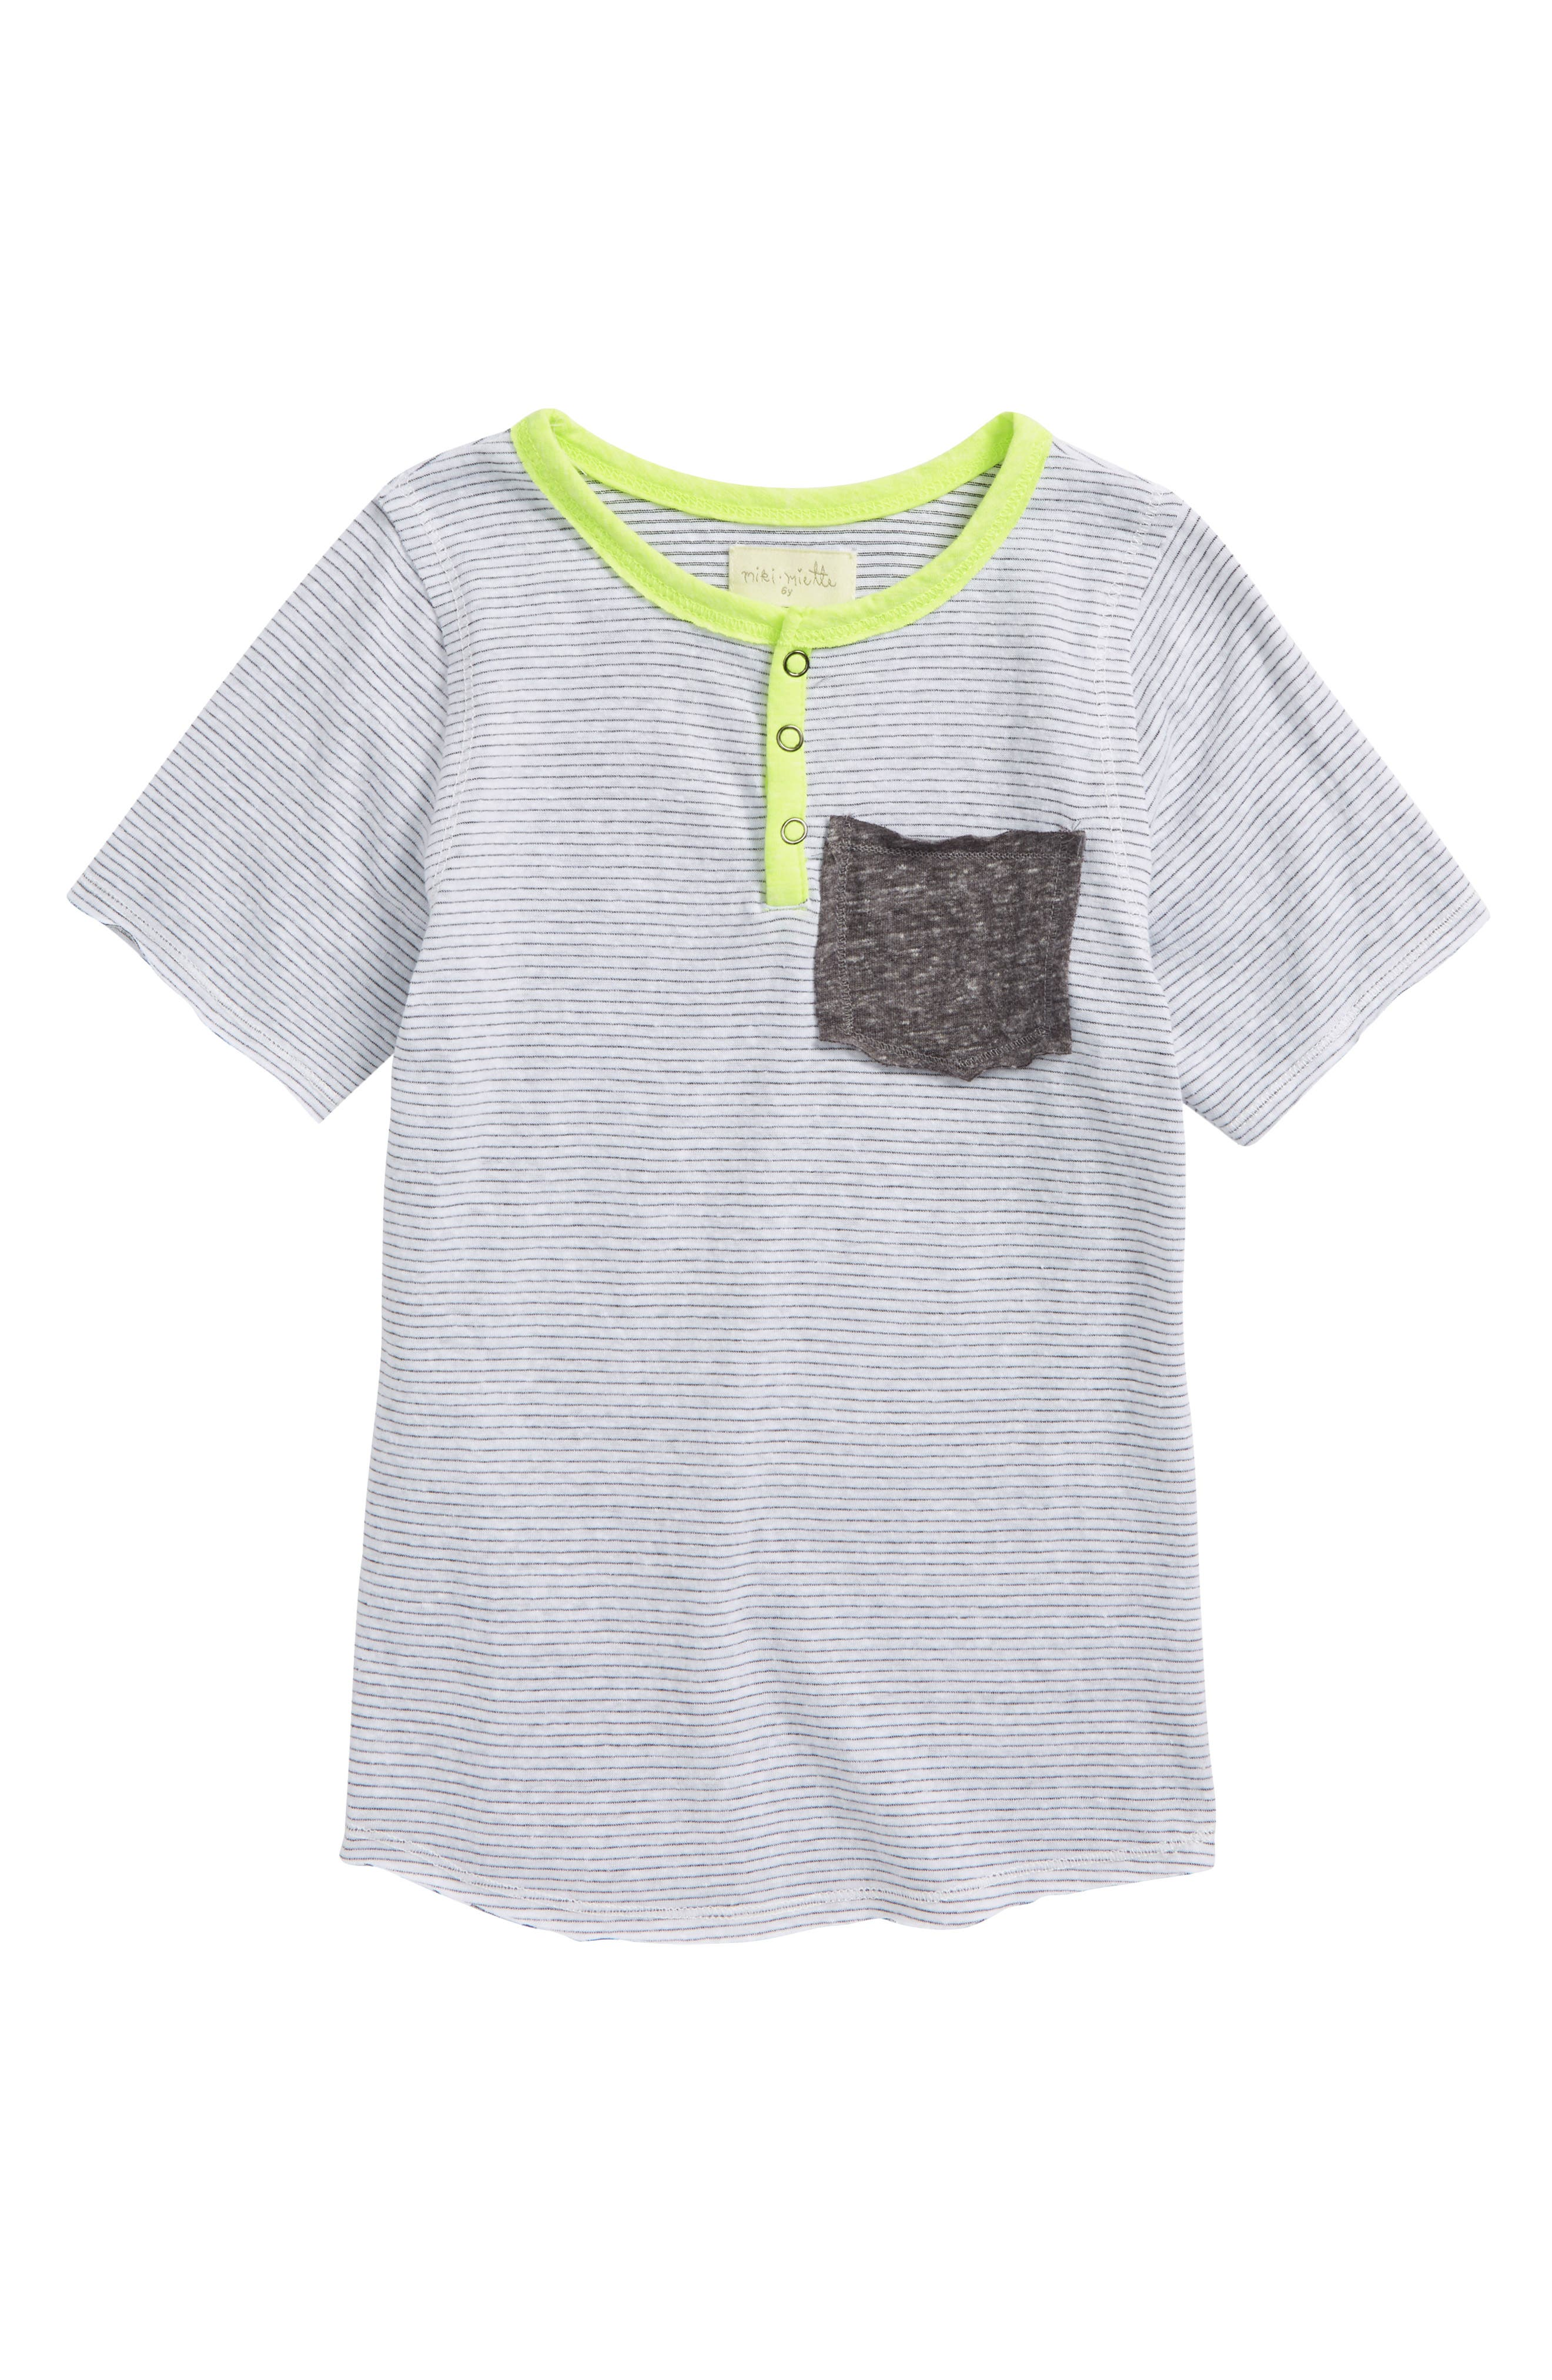 Jax Pocket T-Shirt,                         Main,                         color,